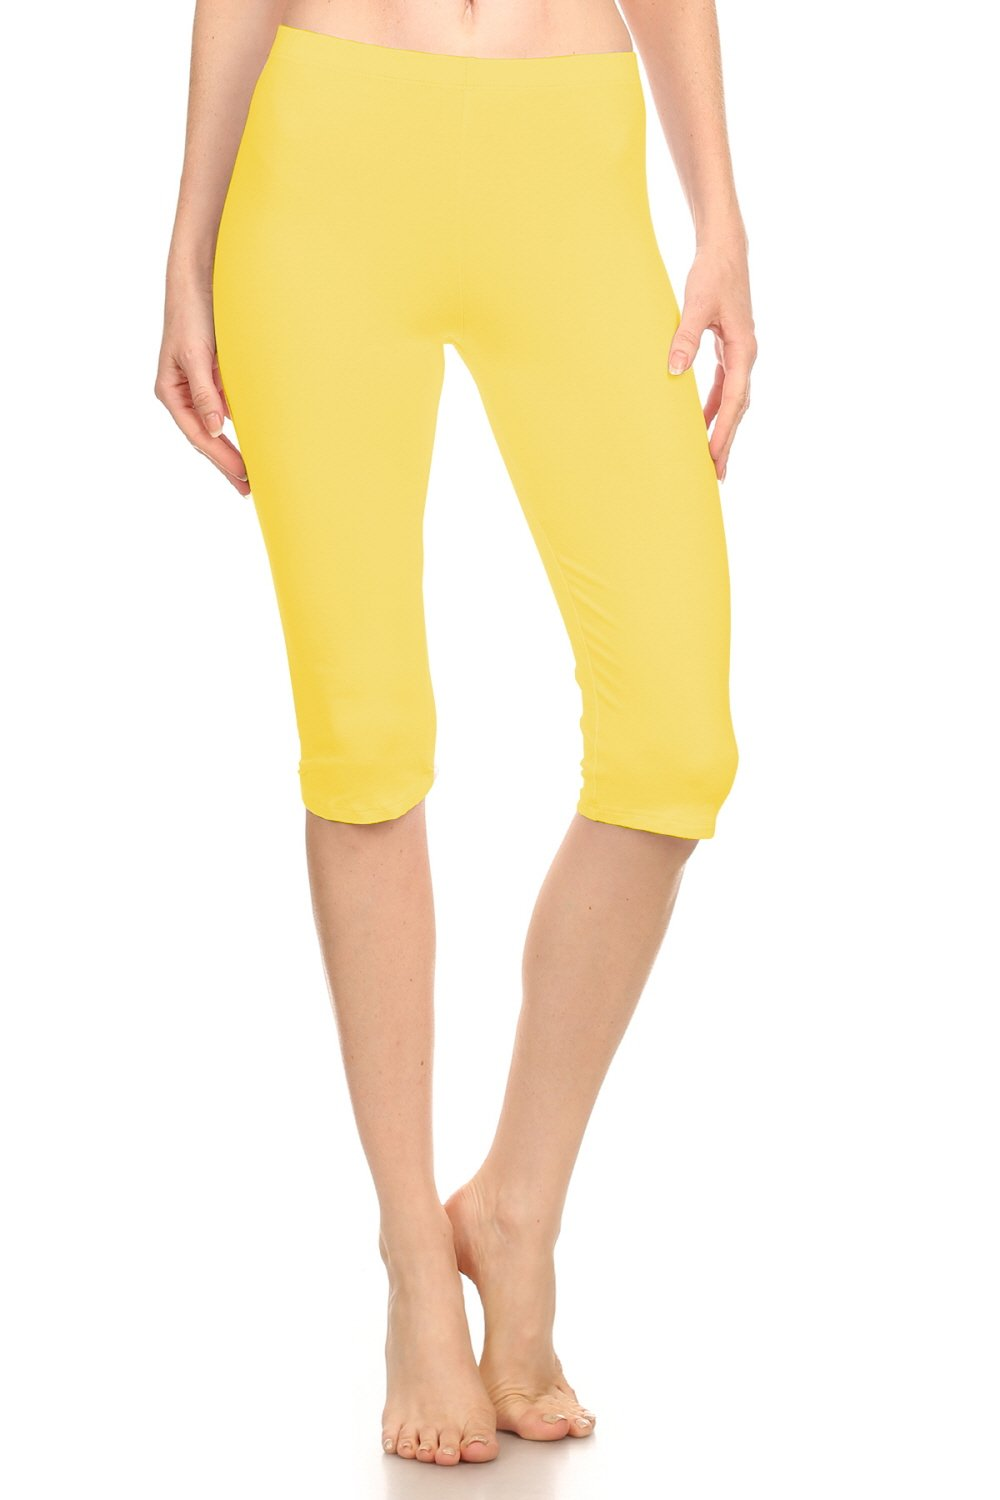 Stretch Cotton Bodysuit Women Soft Stretch Sports Yoga Skinny Capri Length Cotton-Spandex Leggings Tights (&Plus) (Small, Yellow_prime)